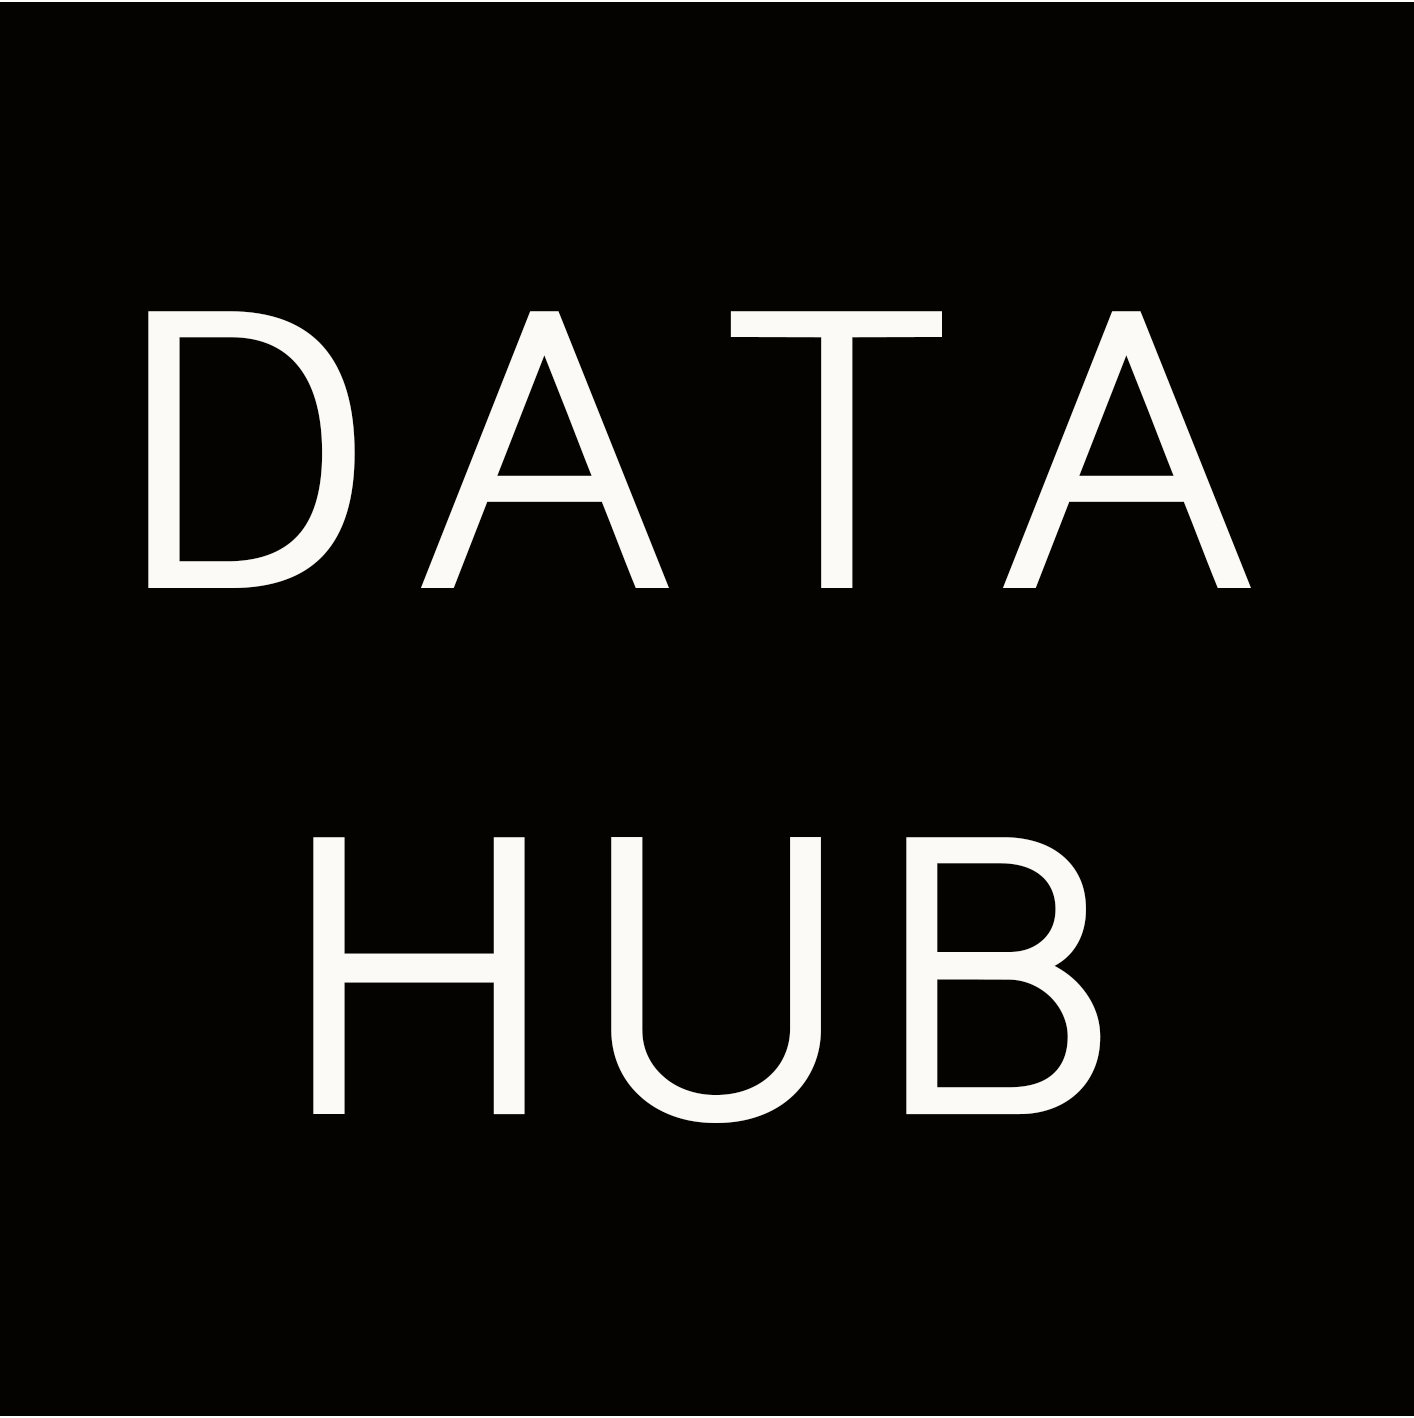 Getting data tutorial - Docs - DataHub - Frictionless Data